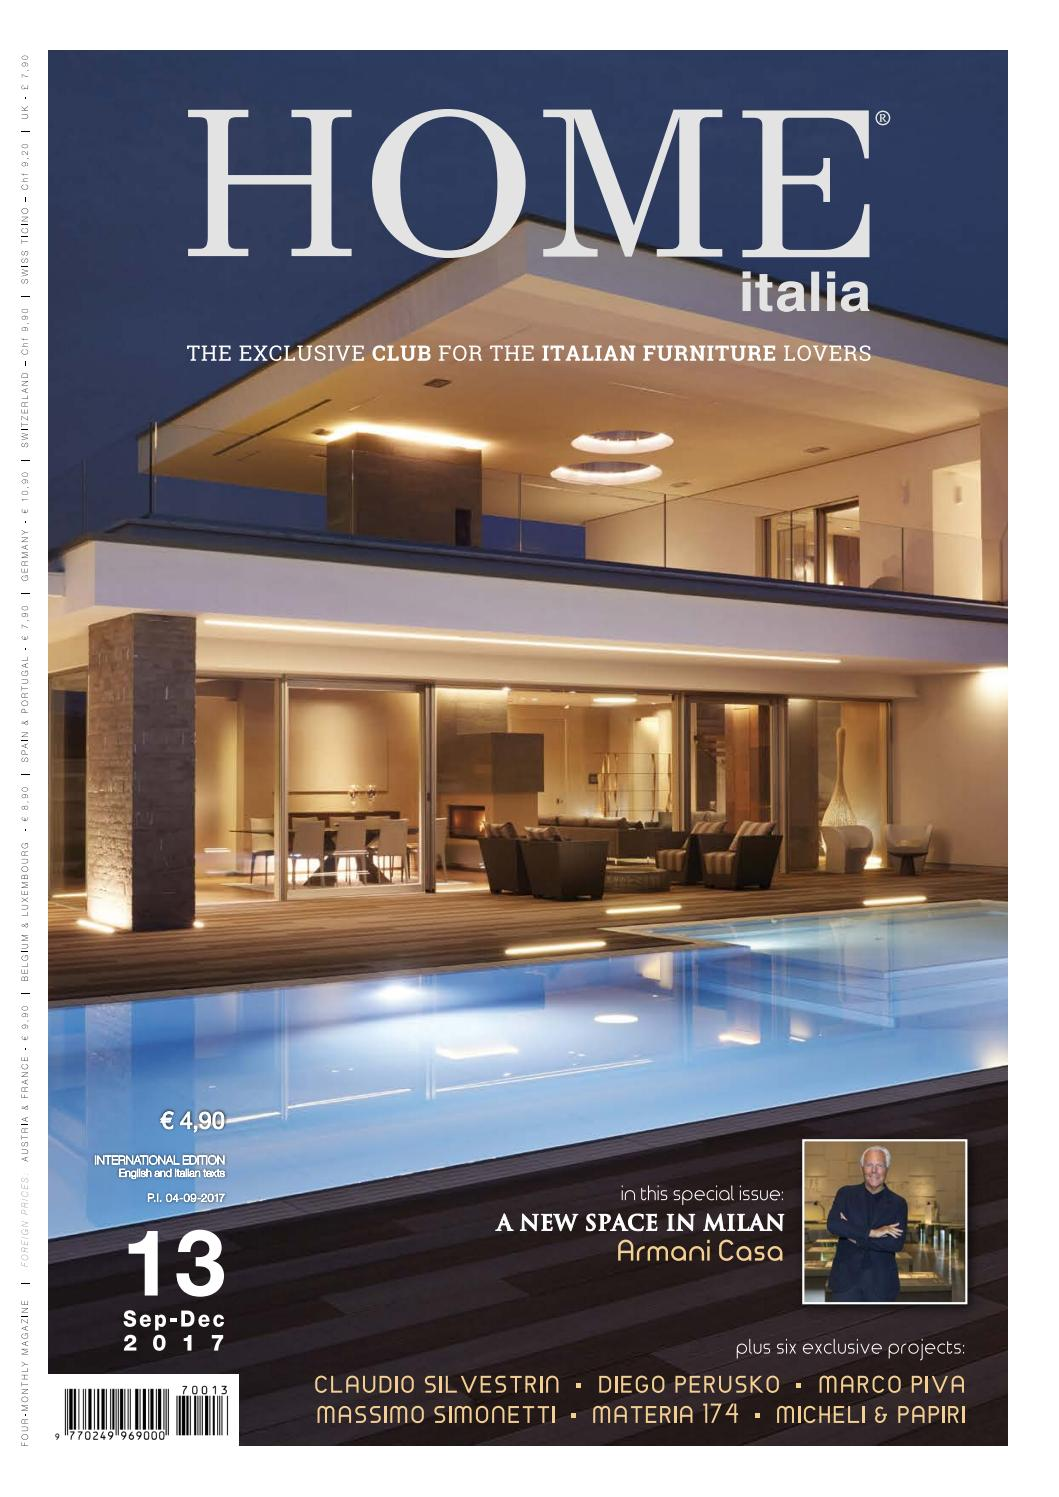 Simonetti Arredo Bagno Treviso.Home Italia 13th Edition By Home Italia Issuu